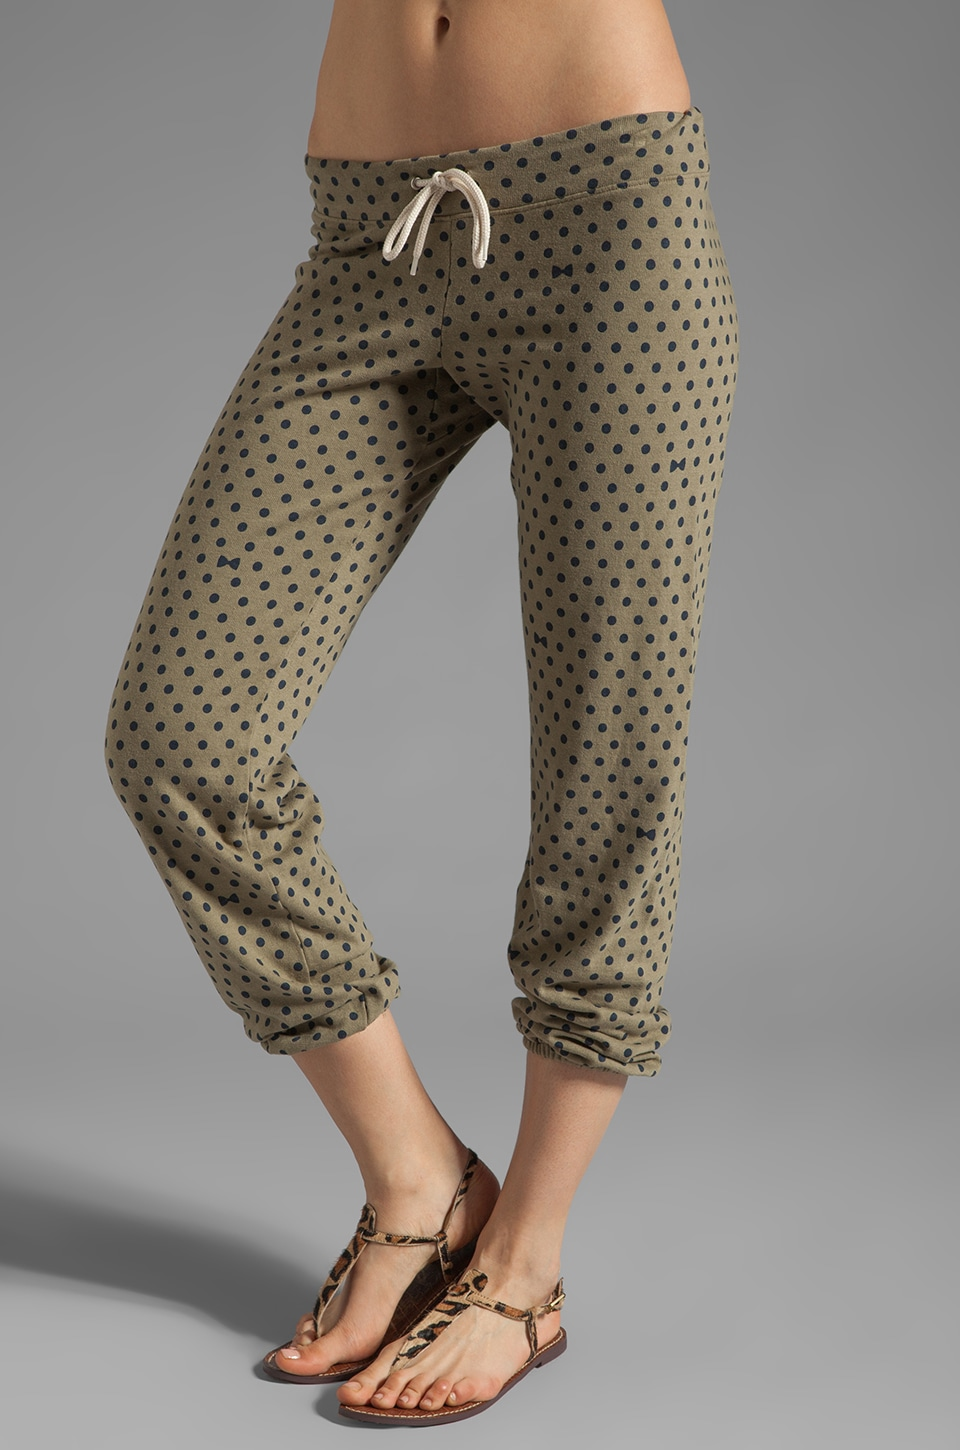 MONROW Polka Dot Vintage Sweats in Army